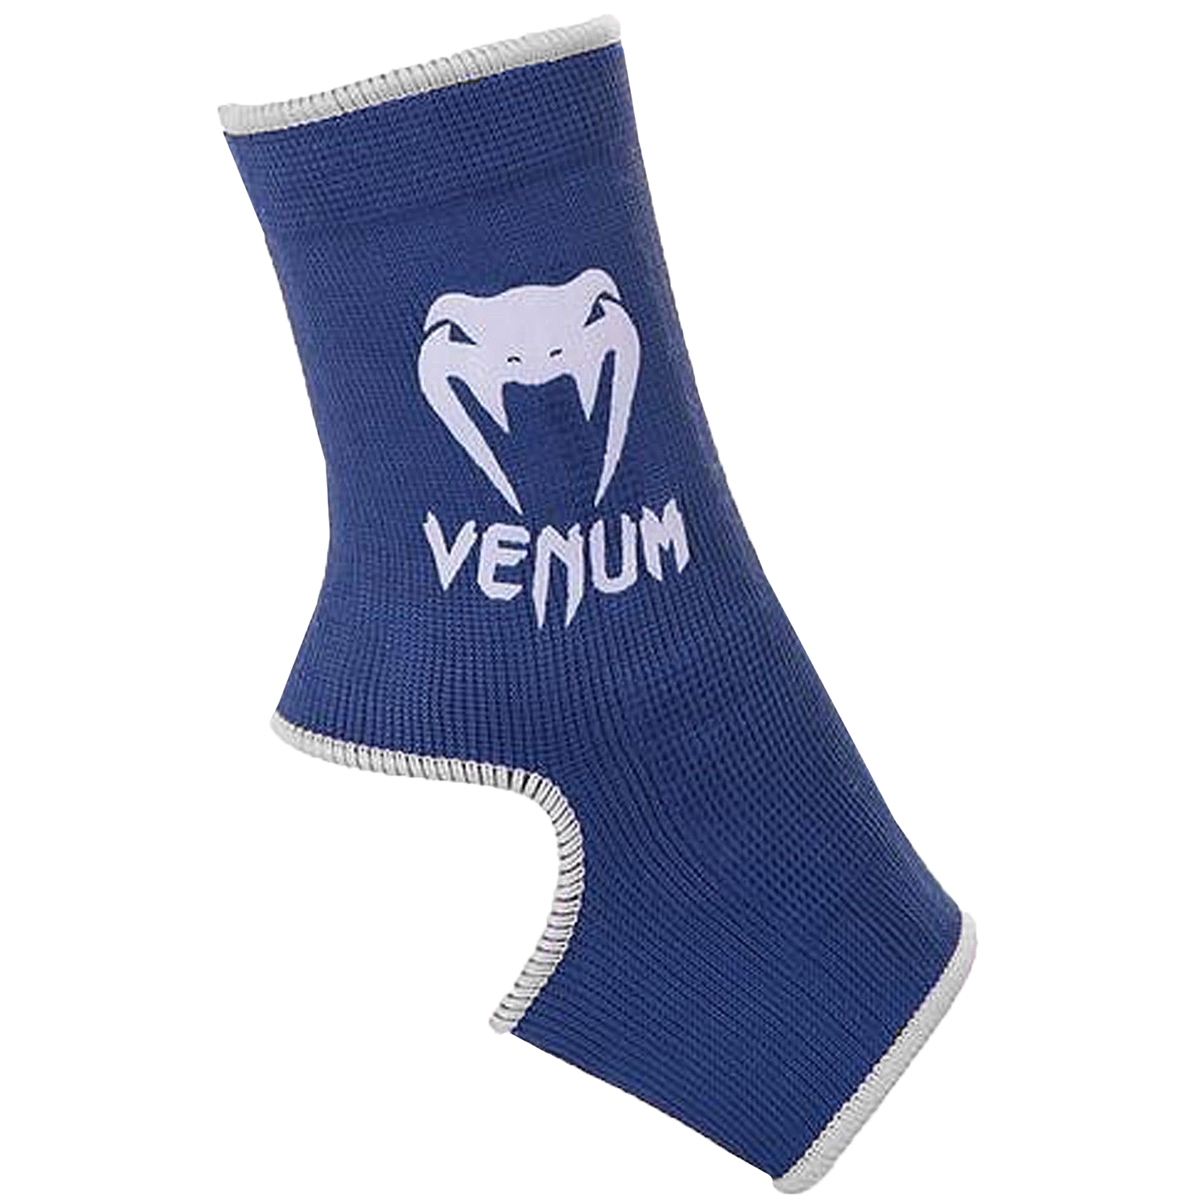 thumbnail 16 - Venum Kontact Slip-On MMA Pro Ankle Support Guards